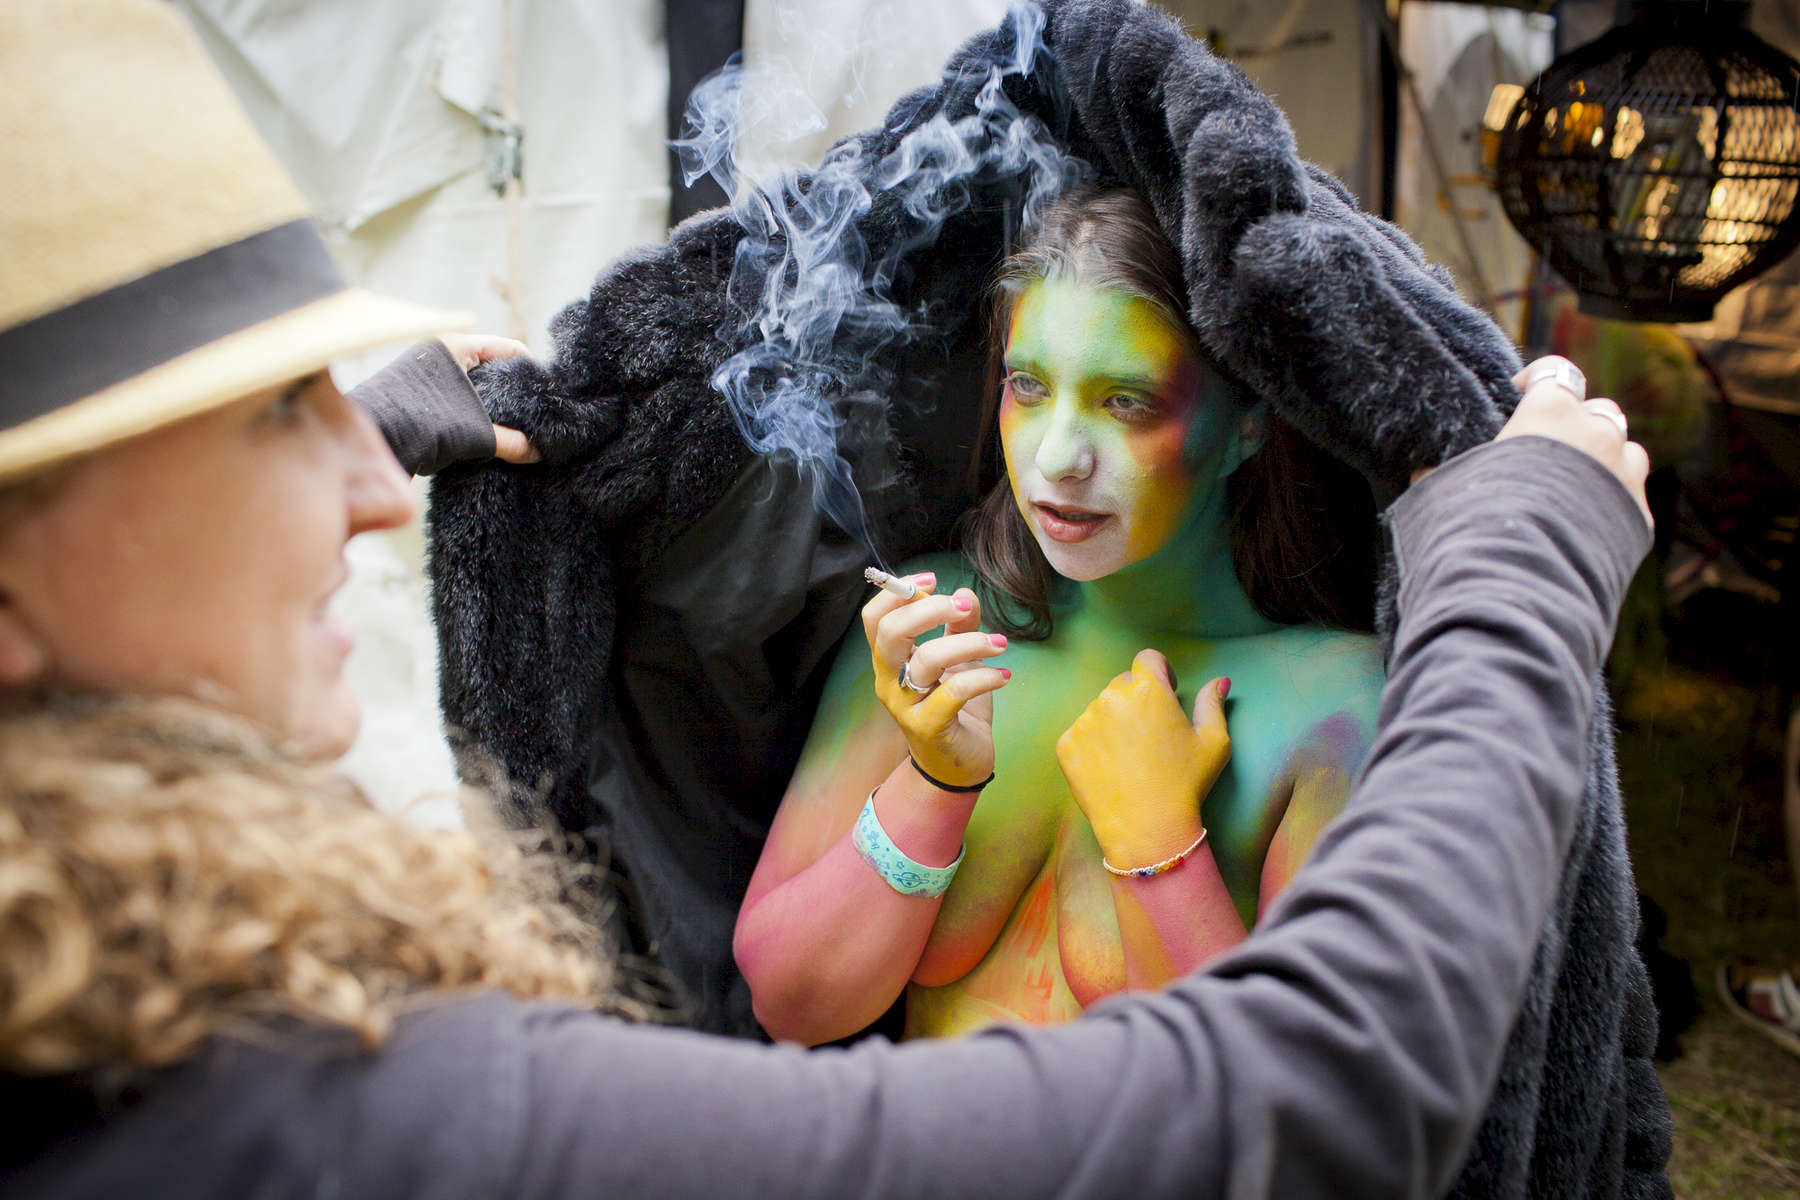 A young woman smokes a cigarette after having body painting done, at Liberate Festival in Sheldon. by Vermont photographer Judd Lamphere